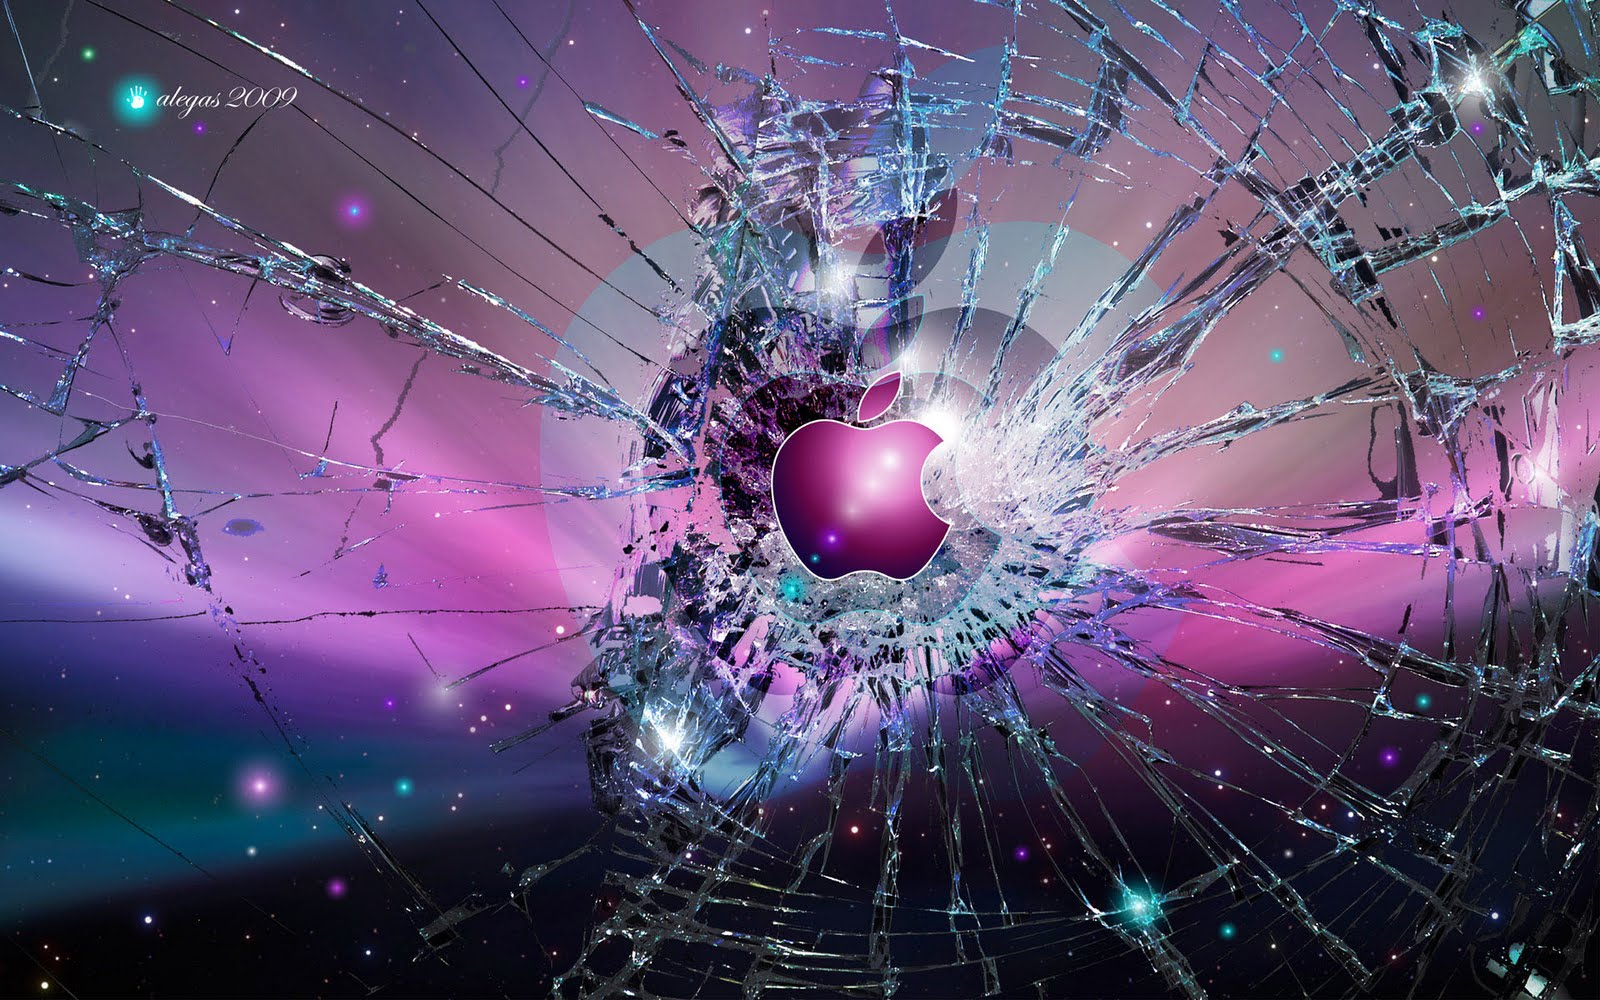 Broken Screen Wallpaper of Apple